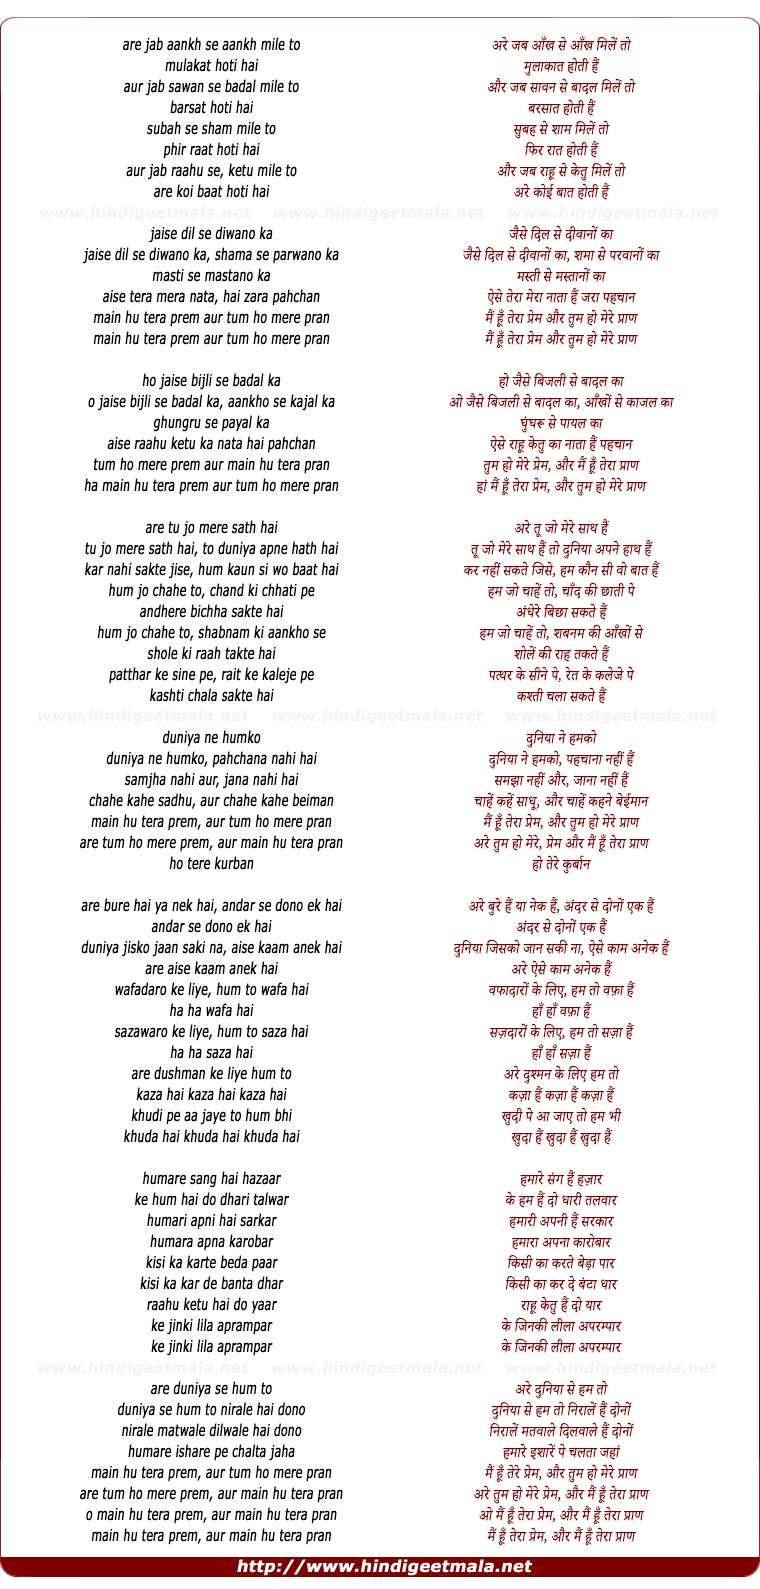 lyrics of song Mai Hu Tera Prem Aur Tum Ho Mere Praan